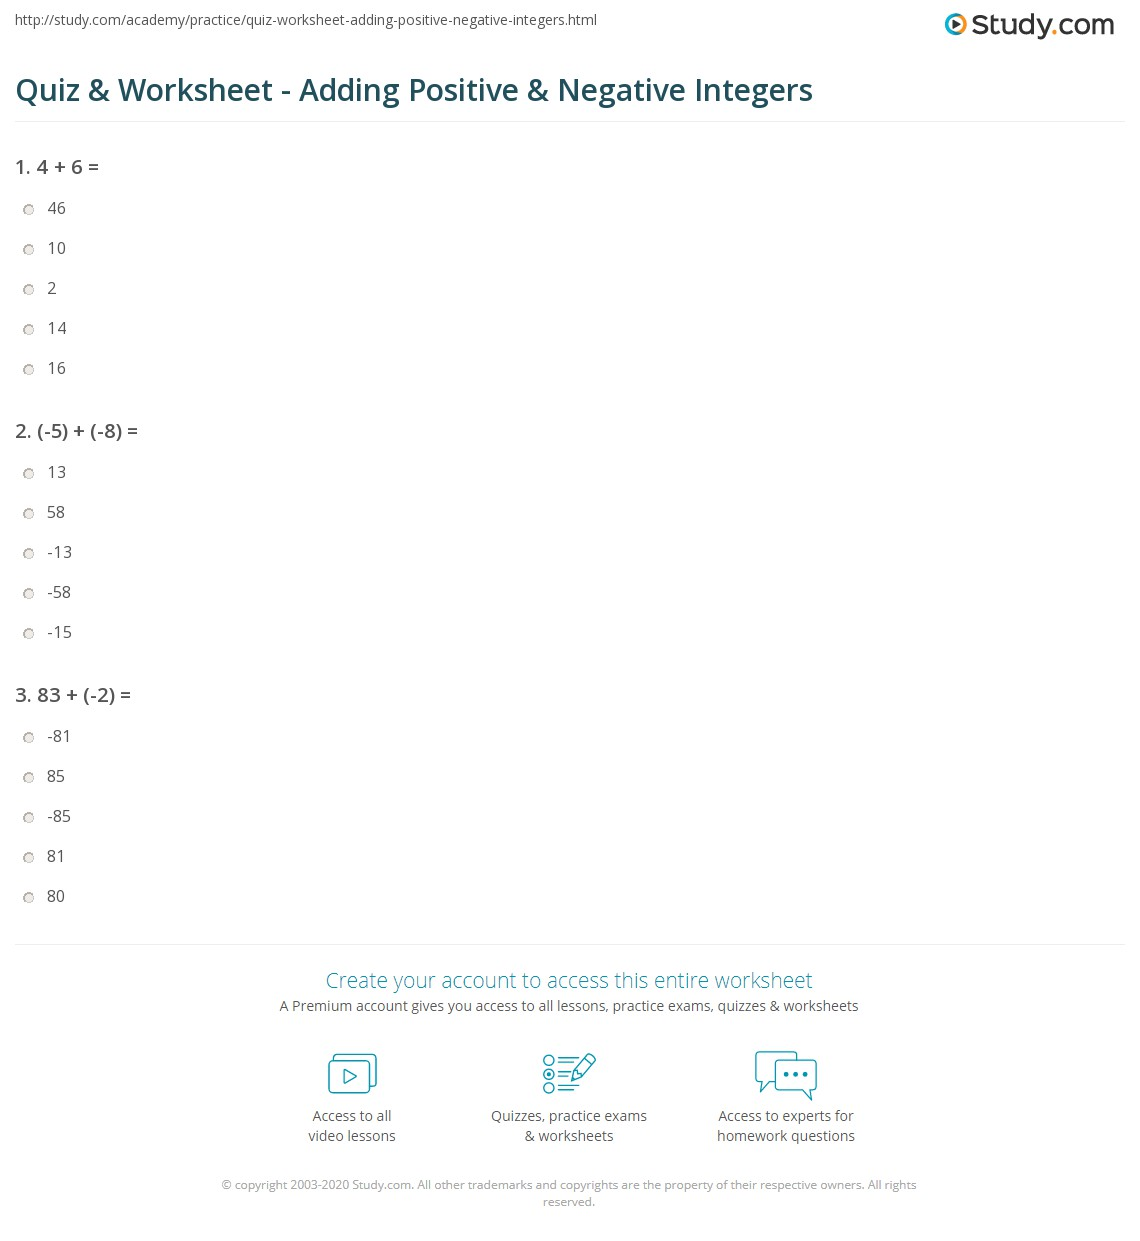 Integers Worksheets Adding Negative And Positive Integers Worksheets likewise Add and Subtract 'Larger Value' Positive and Negative Integers moreover Positive And Negative Numbers Worksheets Teaching Resources furthermore May Adding Negative And Positive Integers Worksheets together with Integer Worksheets together with Integers Worksheets   Dynamically Created Integers Worksheets together with  moreover Negative Number Worksheets   Free    monCoreSheets in addition Integers Worksheets   Dynamically Created Integers Worksheets moreover Quiz   Worksheet   Adding Positive   Negative Integers   Study further  further Multiplying Positive and Negative Integers Worksheet for 5th   7th additionally  furthermore Negative Number Worksheets   Free    monCoreSheets further Integer Worksheet 6th Grade Pdf Addition And Subtraction Of Integers together with . on positive and negative integers worksheets